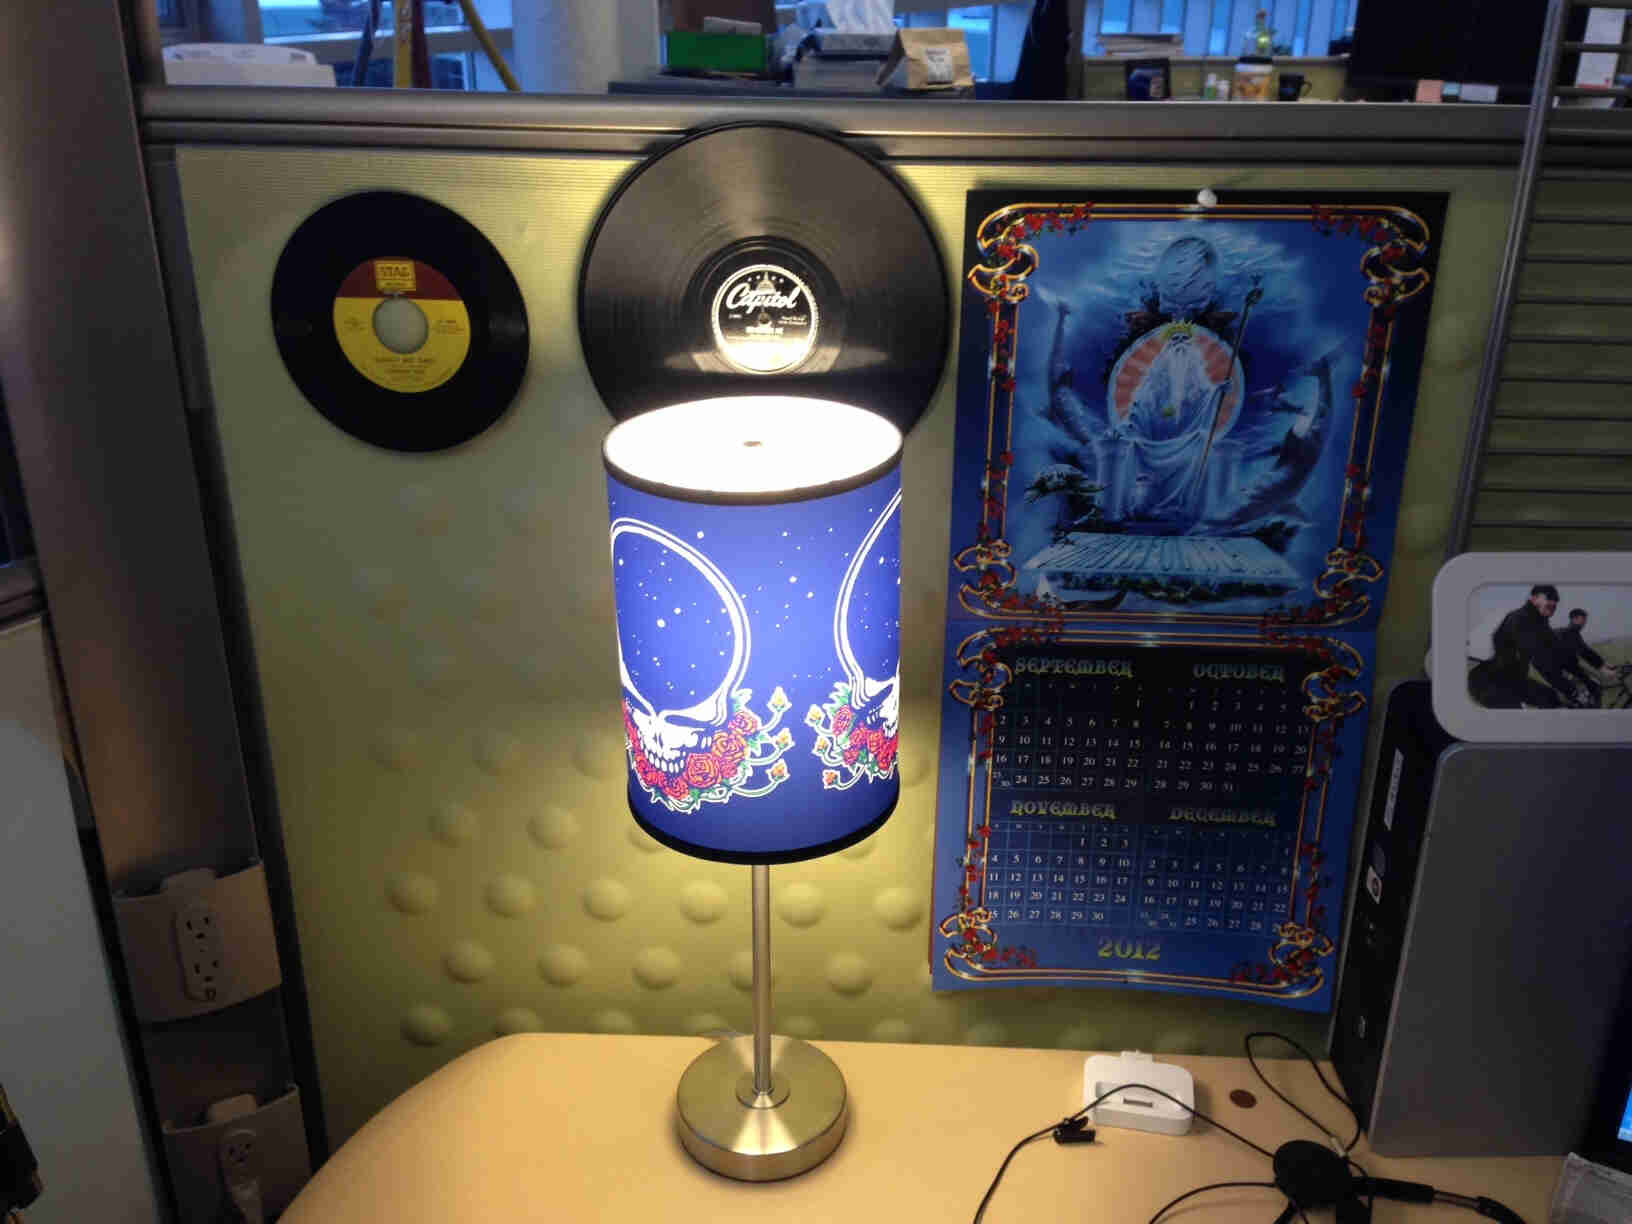 A lamp with a Grateful Dead shade, on a table in a cubicle, with records on a wall behind it